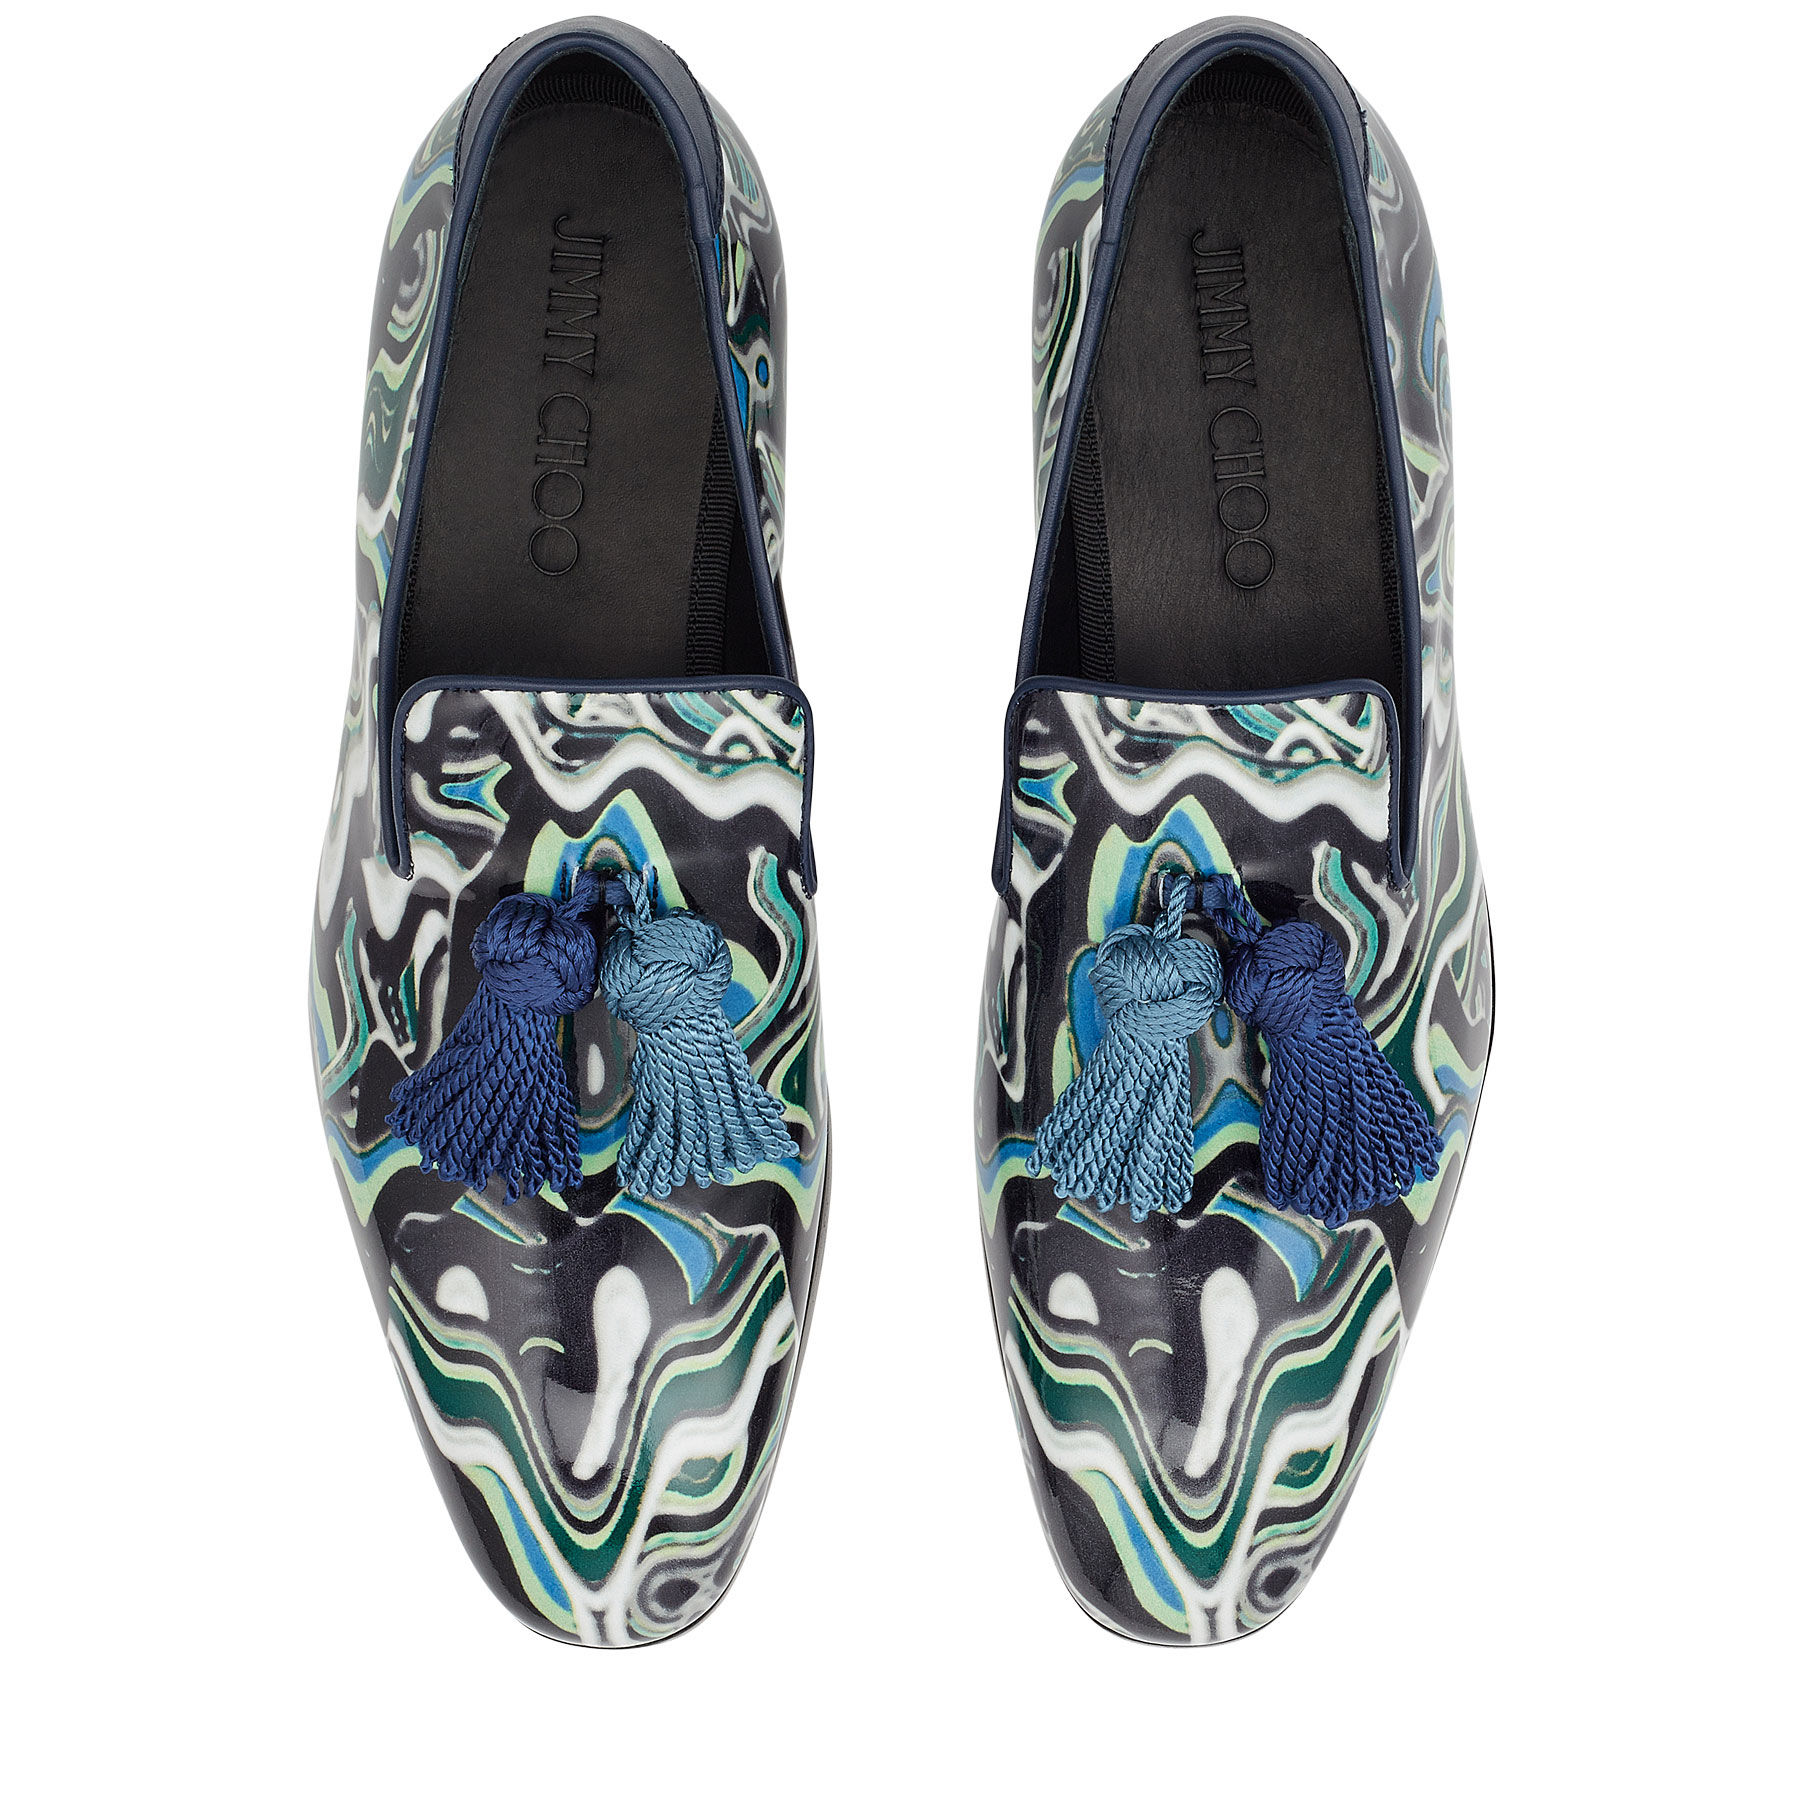 Foxley slippers - Blue Jimmy Choo London ft0gp